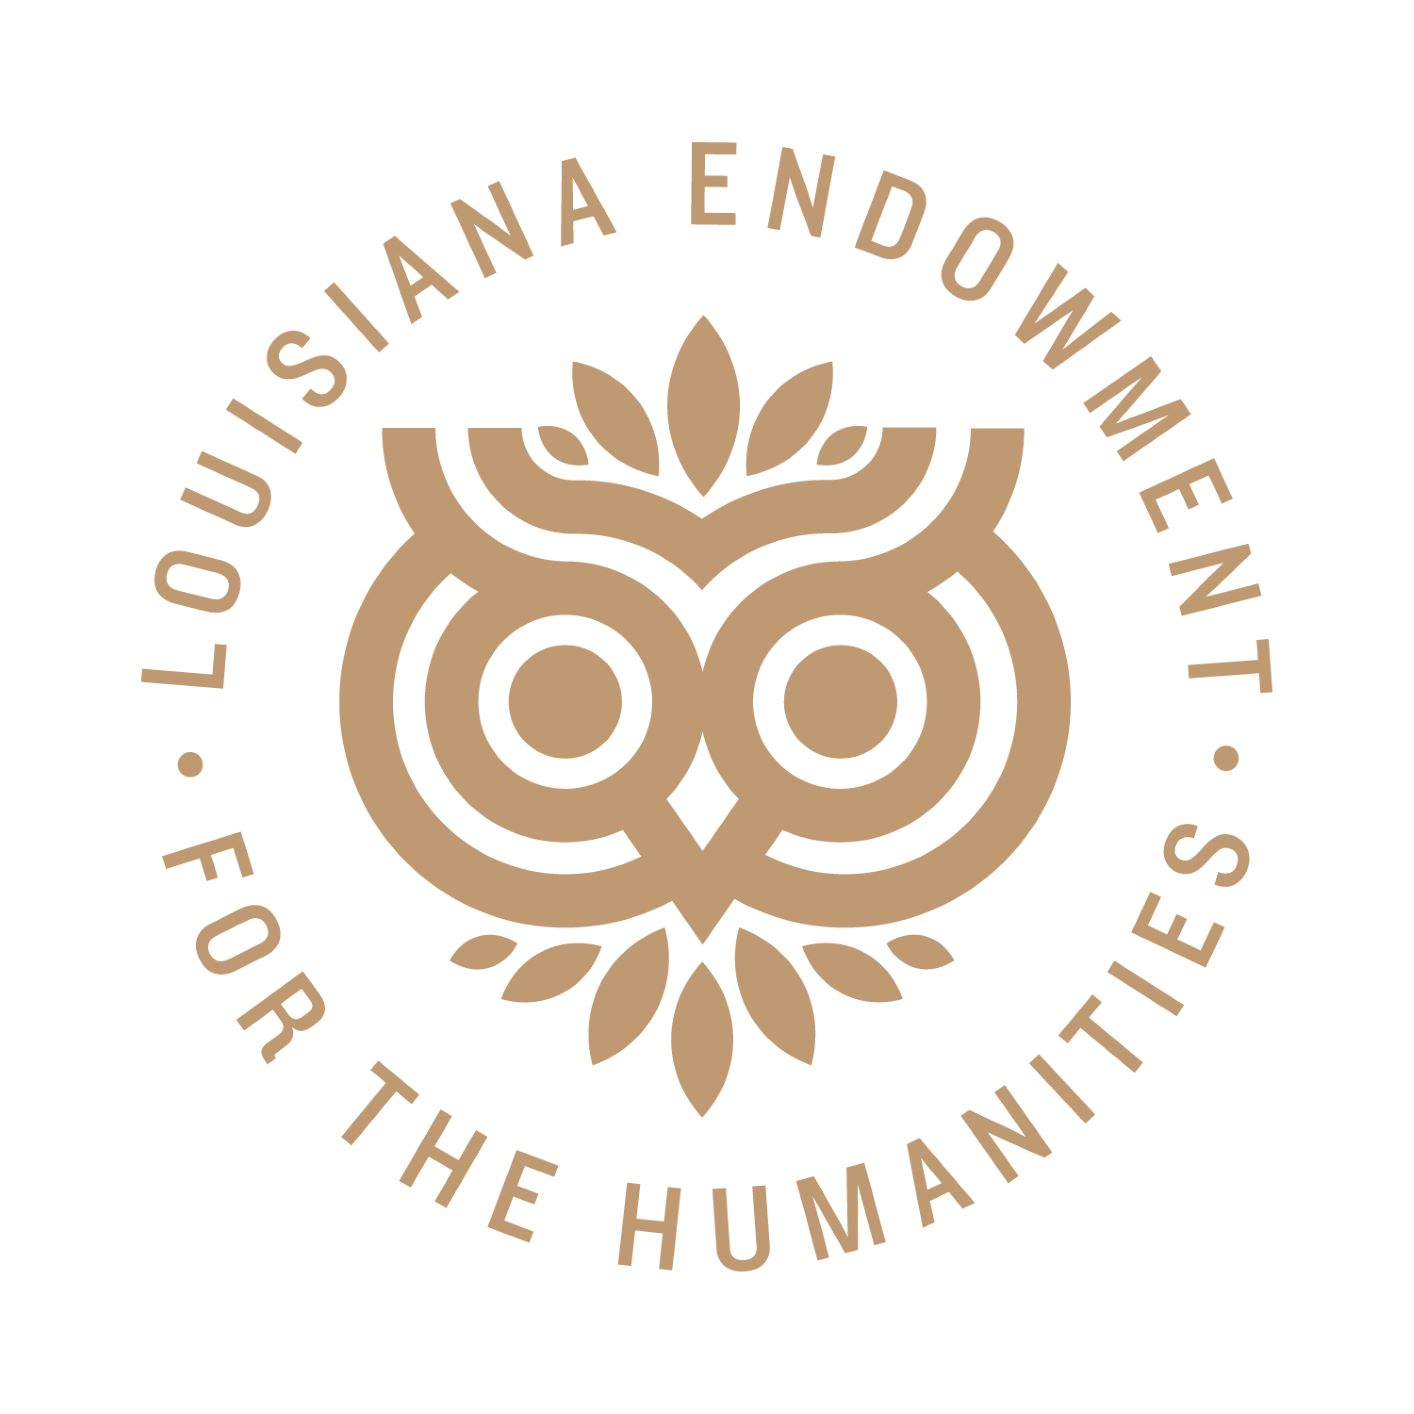 Louisiana Endowment for the Humanities